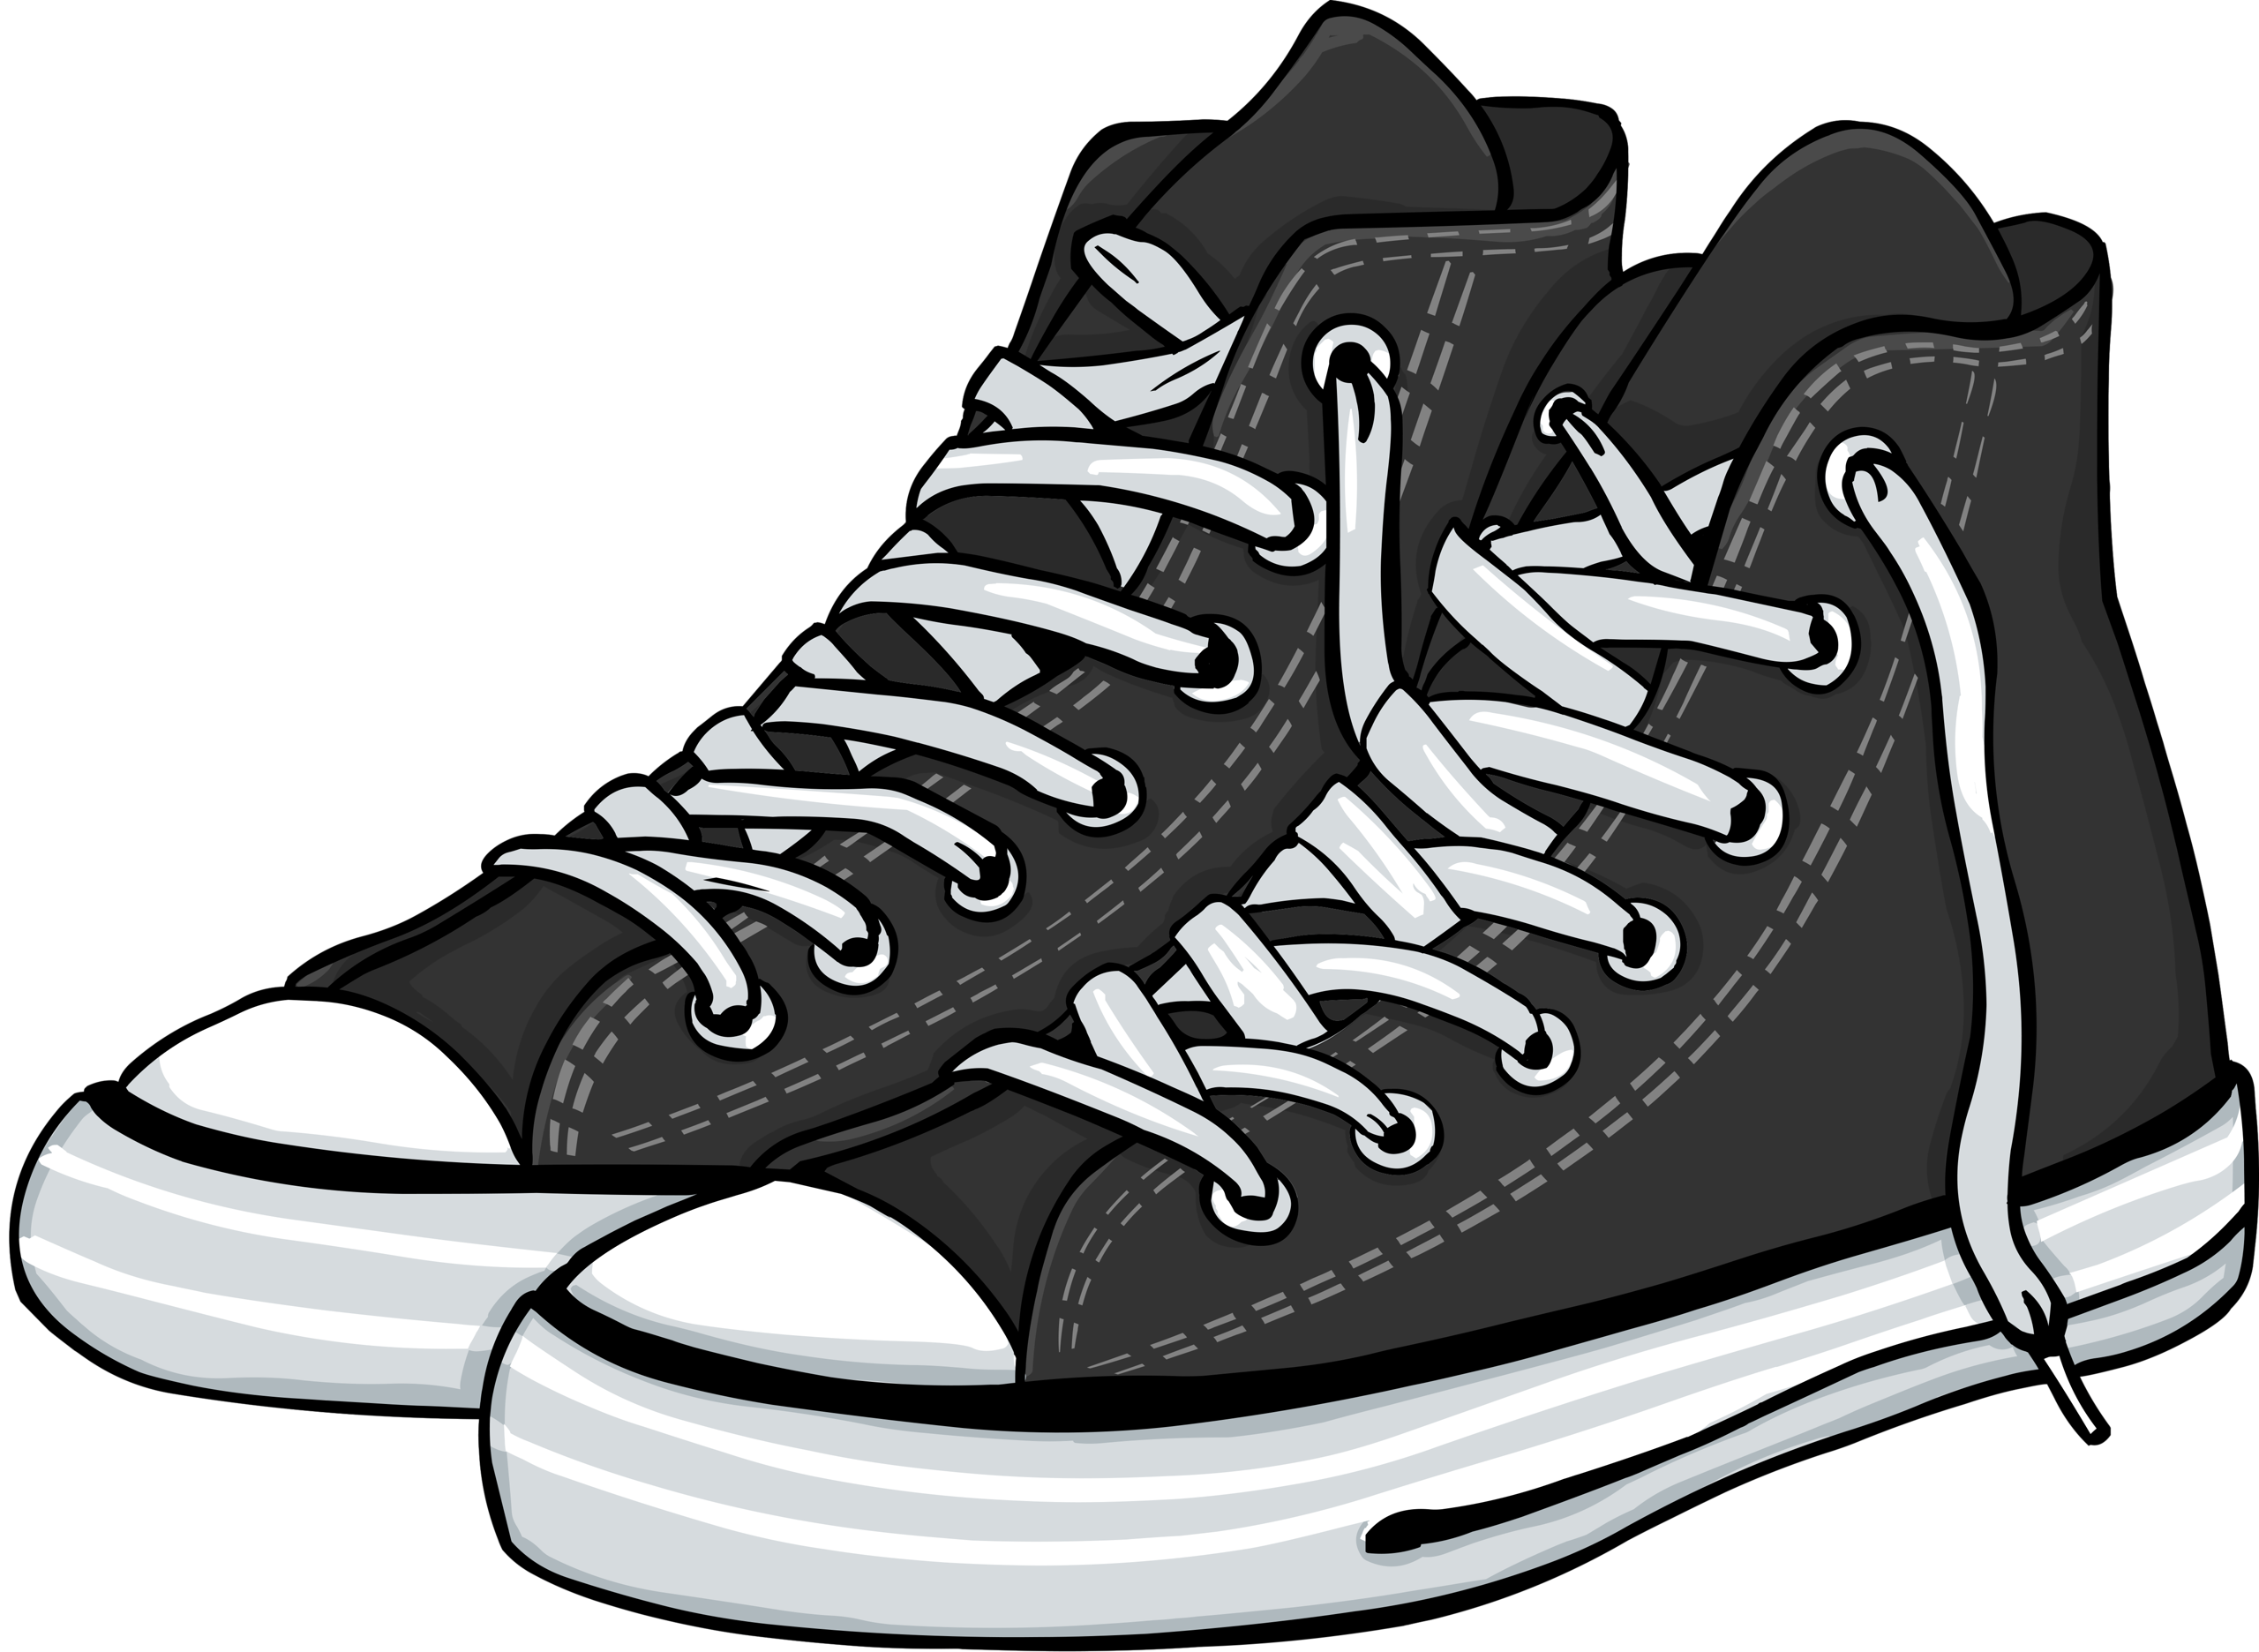 picture black and white library Converse clipart. Shutterstock png pinterest clip.